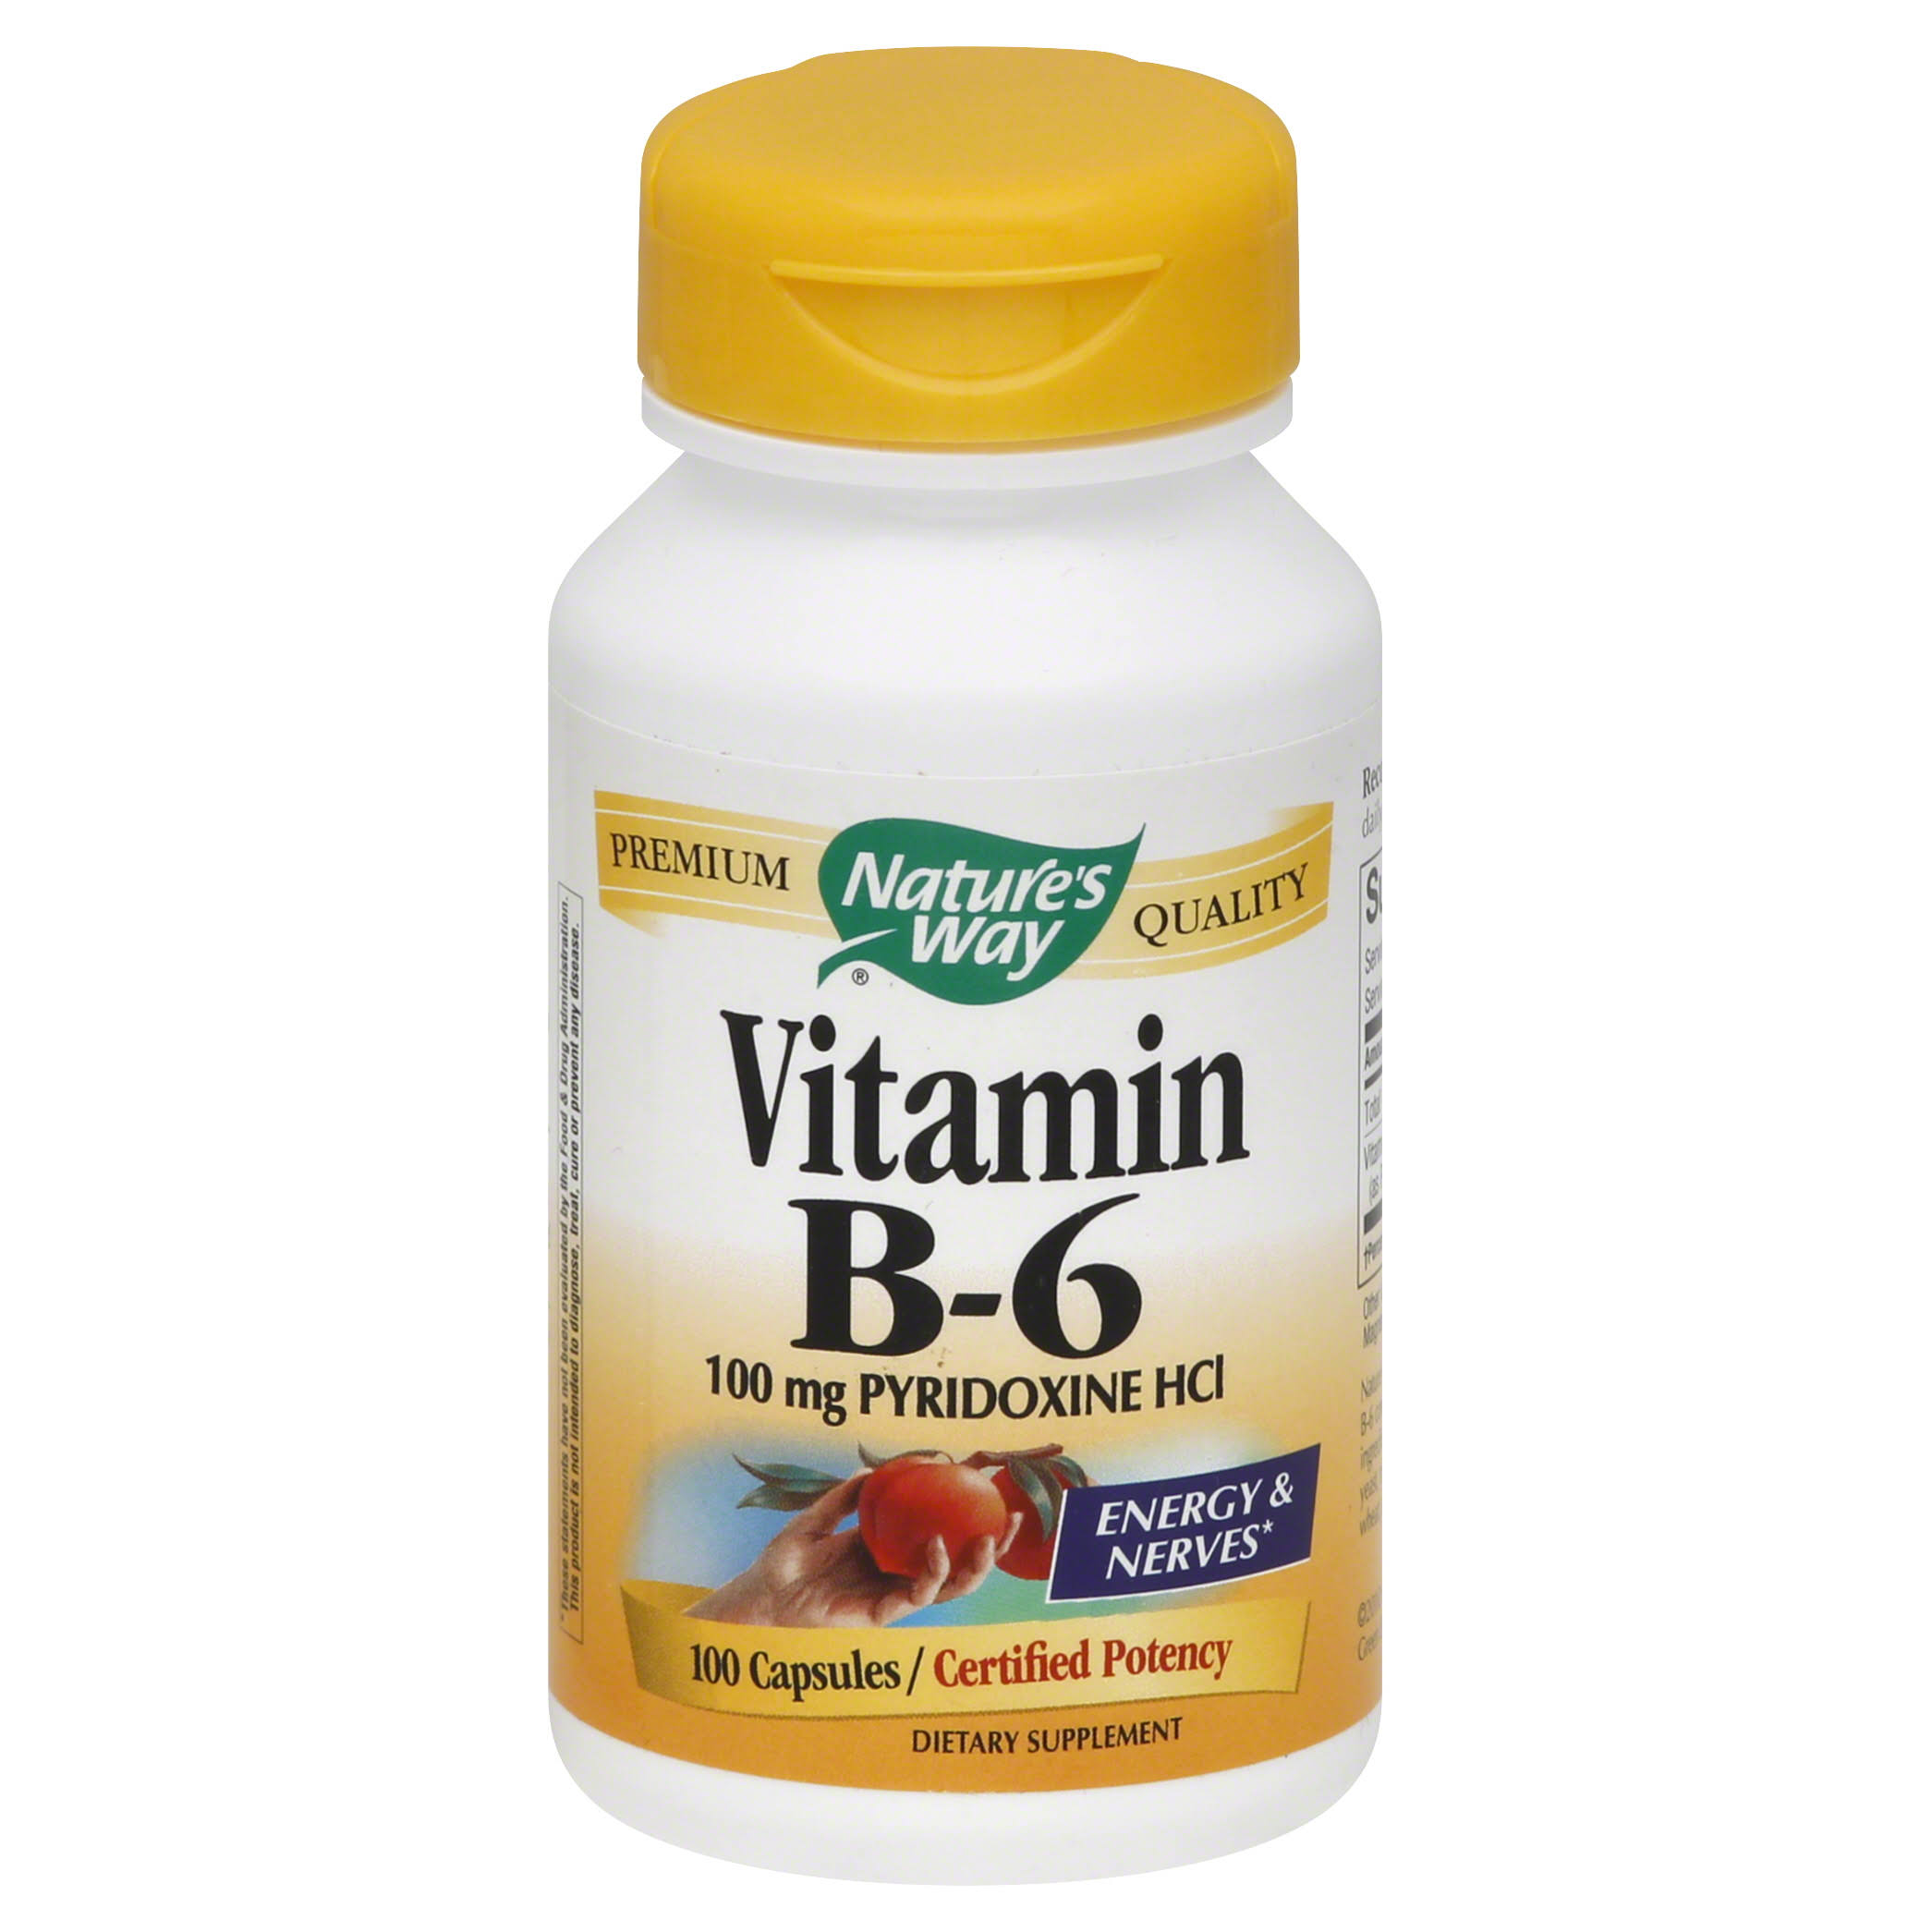 Nature's Way Vitamin B-6 - 100mg, x100